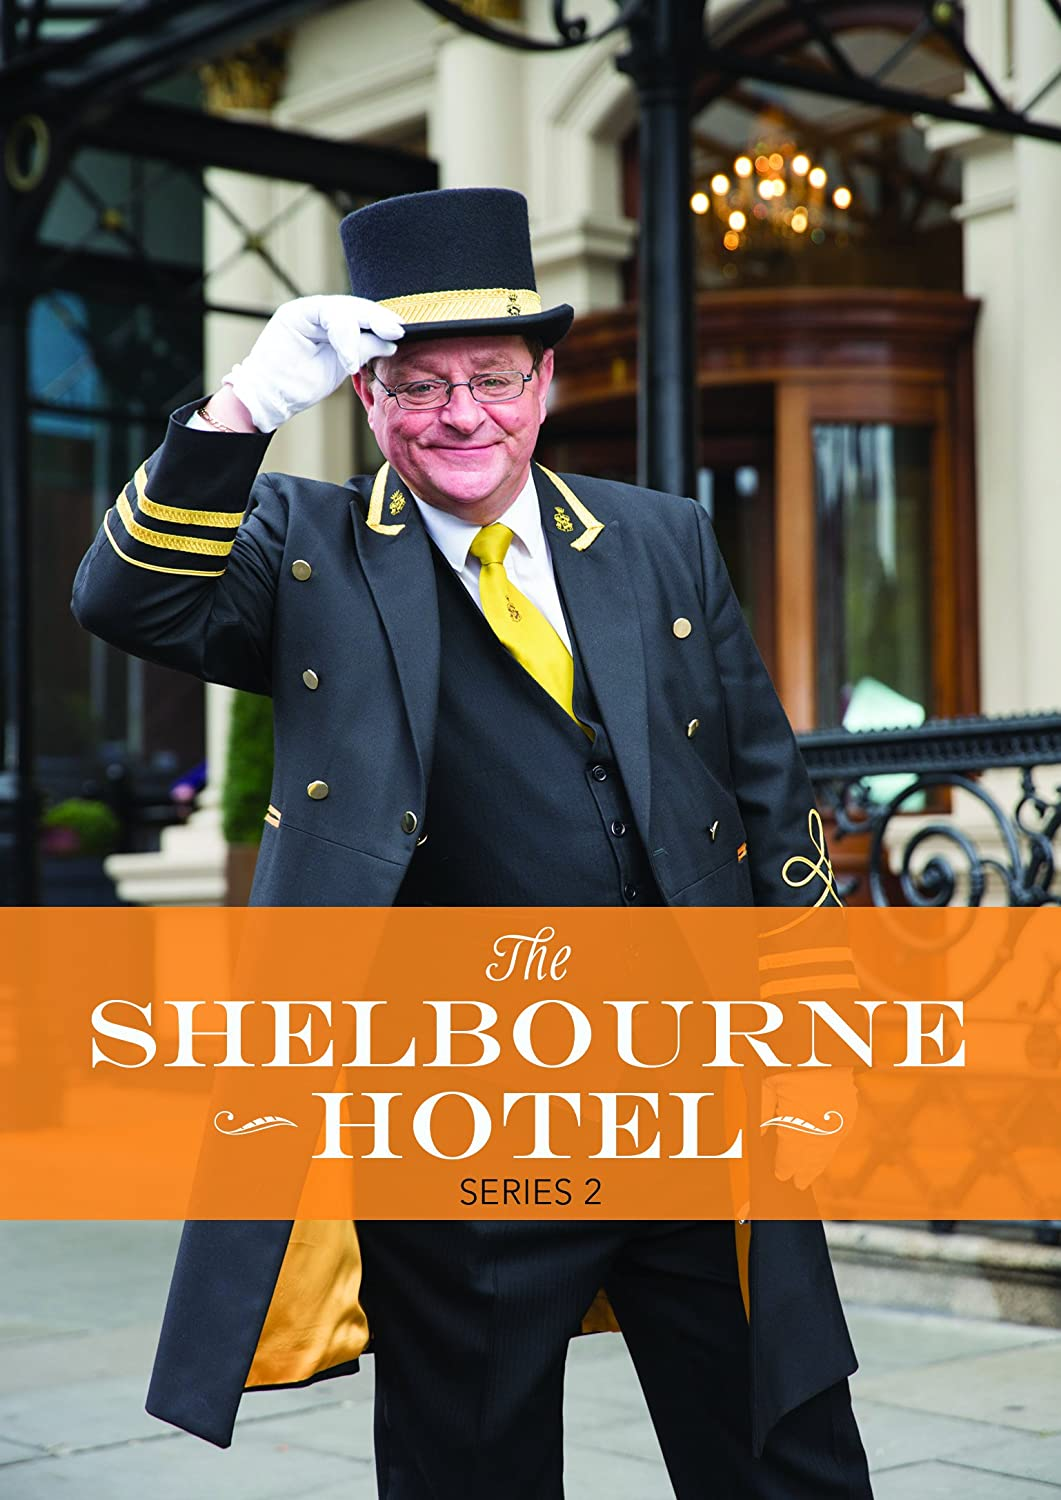 The Shelbourne Hotel: Series 2